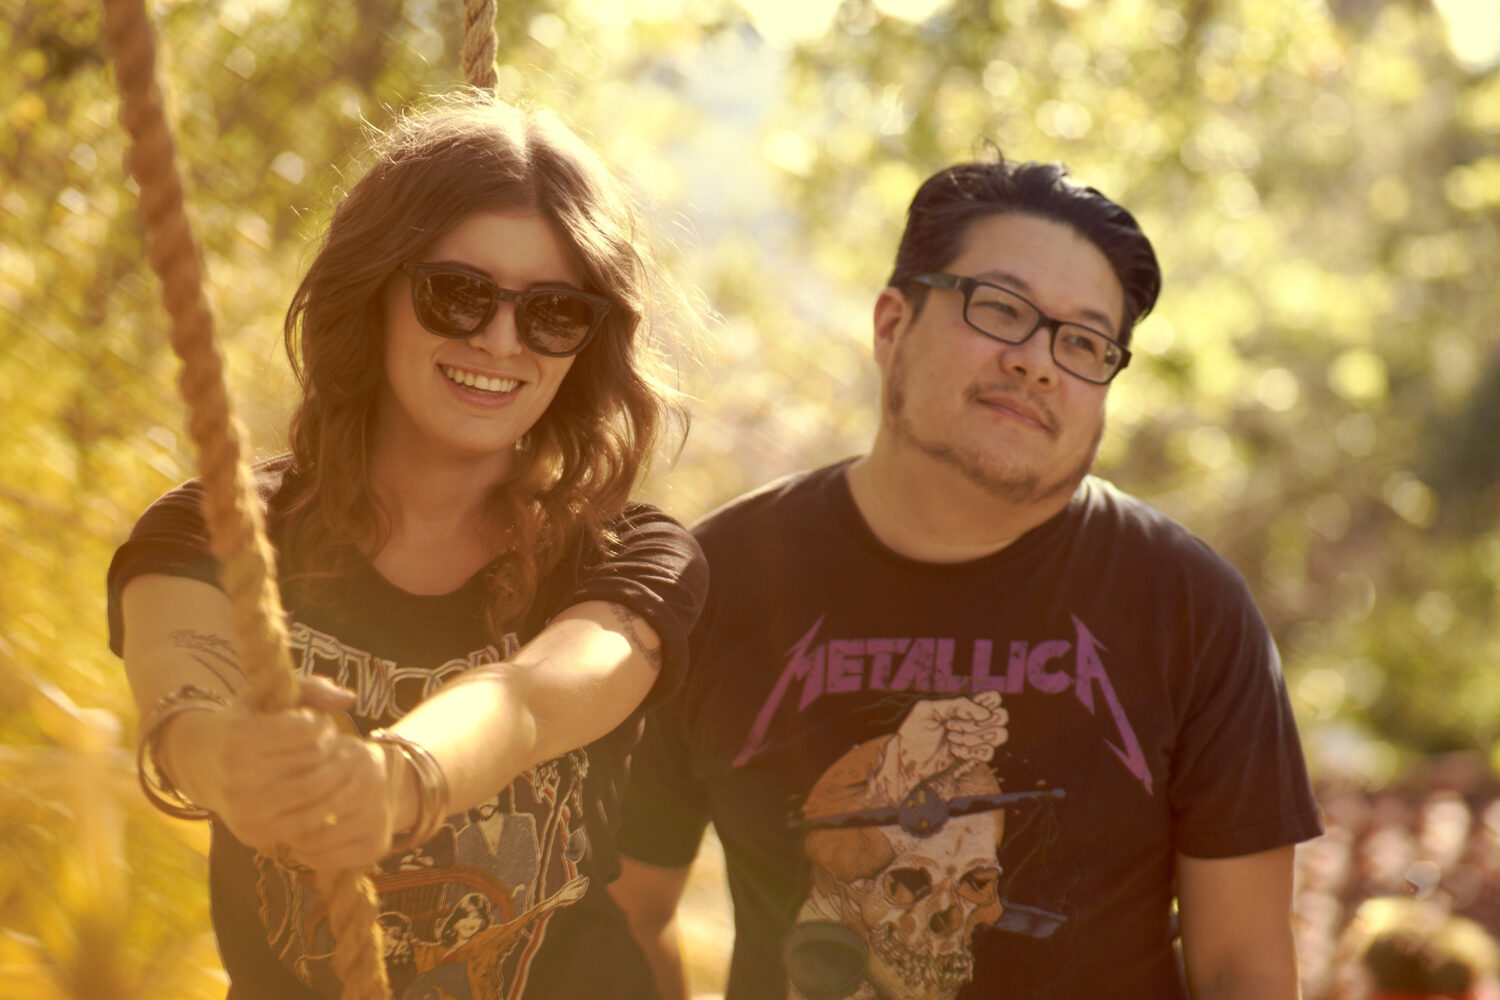 Best Coast play 'The Bandmate Game' on James Corden's Late Late Show